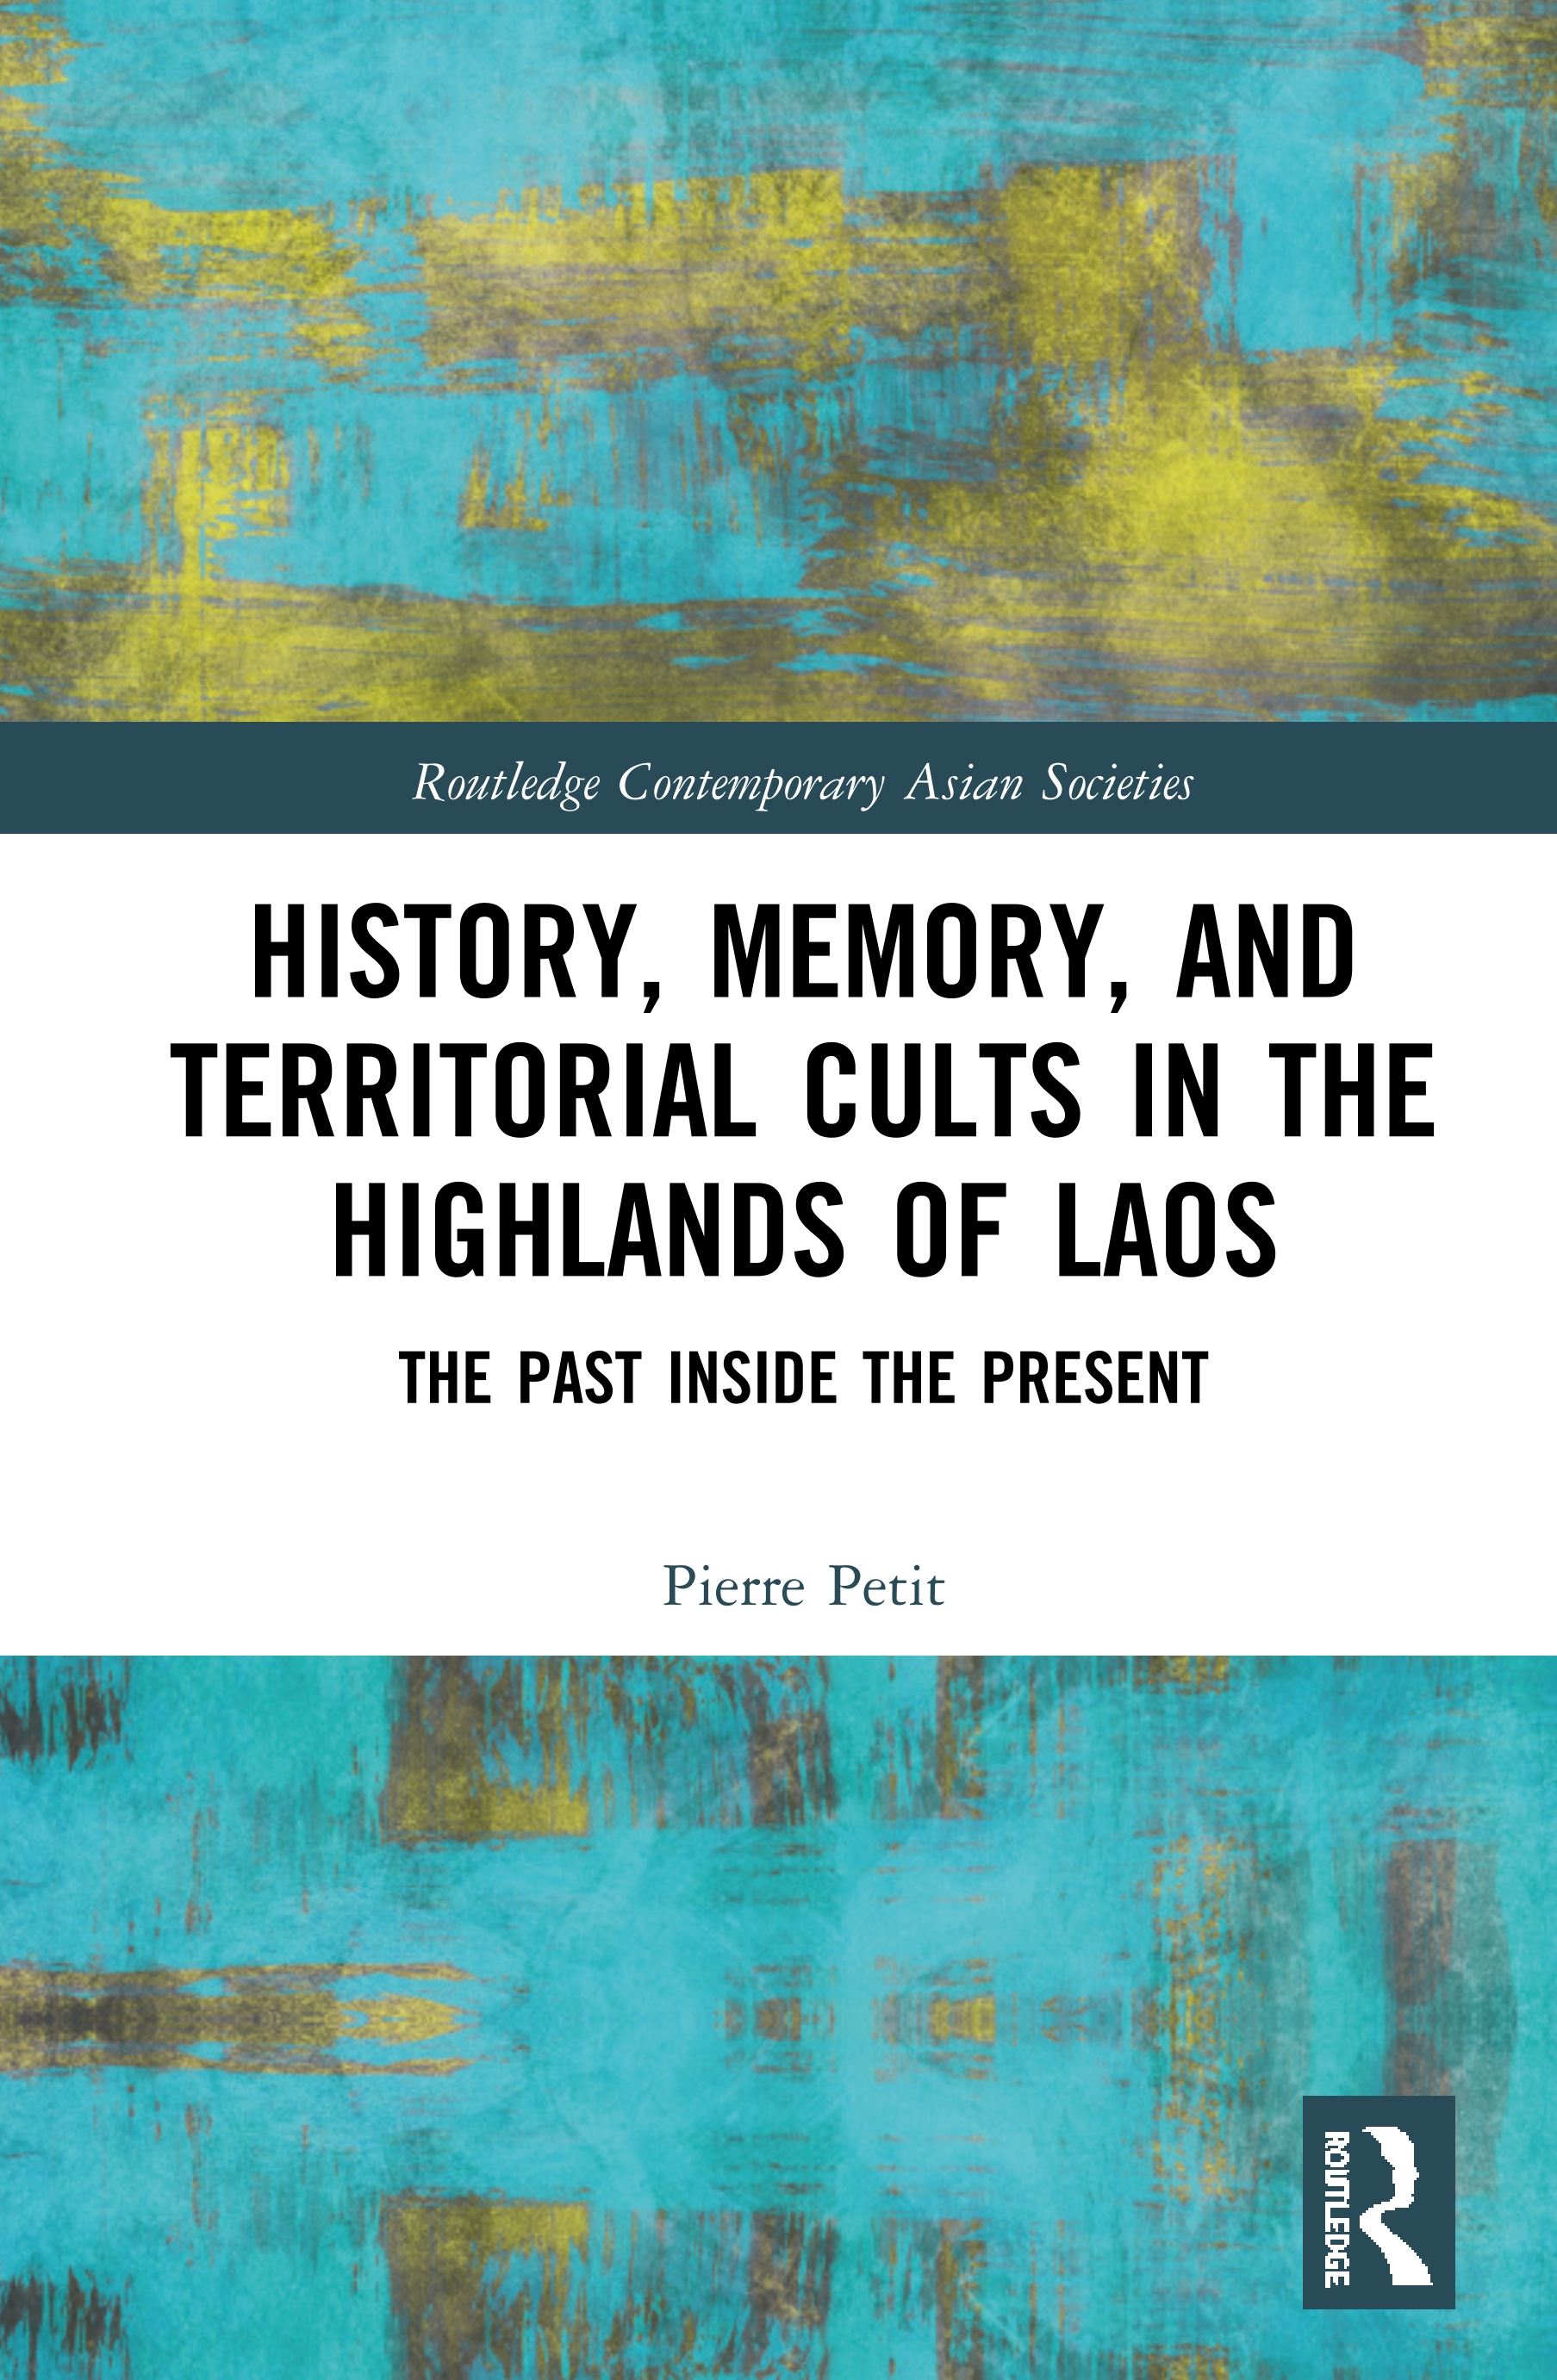 History, Memory, and Territorial Cults in the Highlands of Laos: The Past Inside the Present book cover